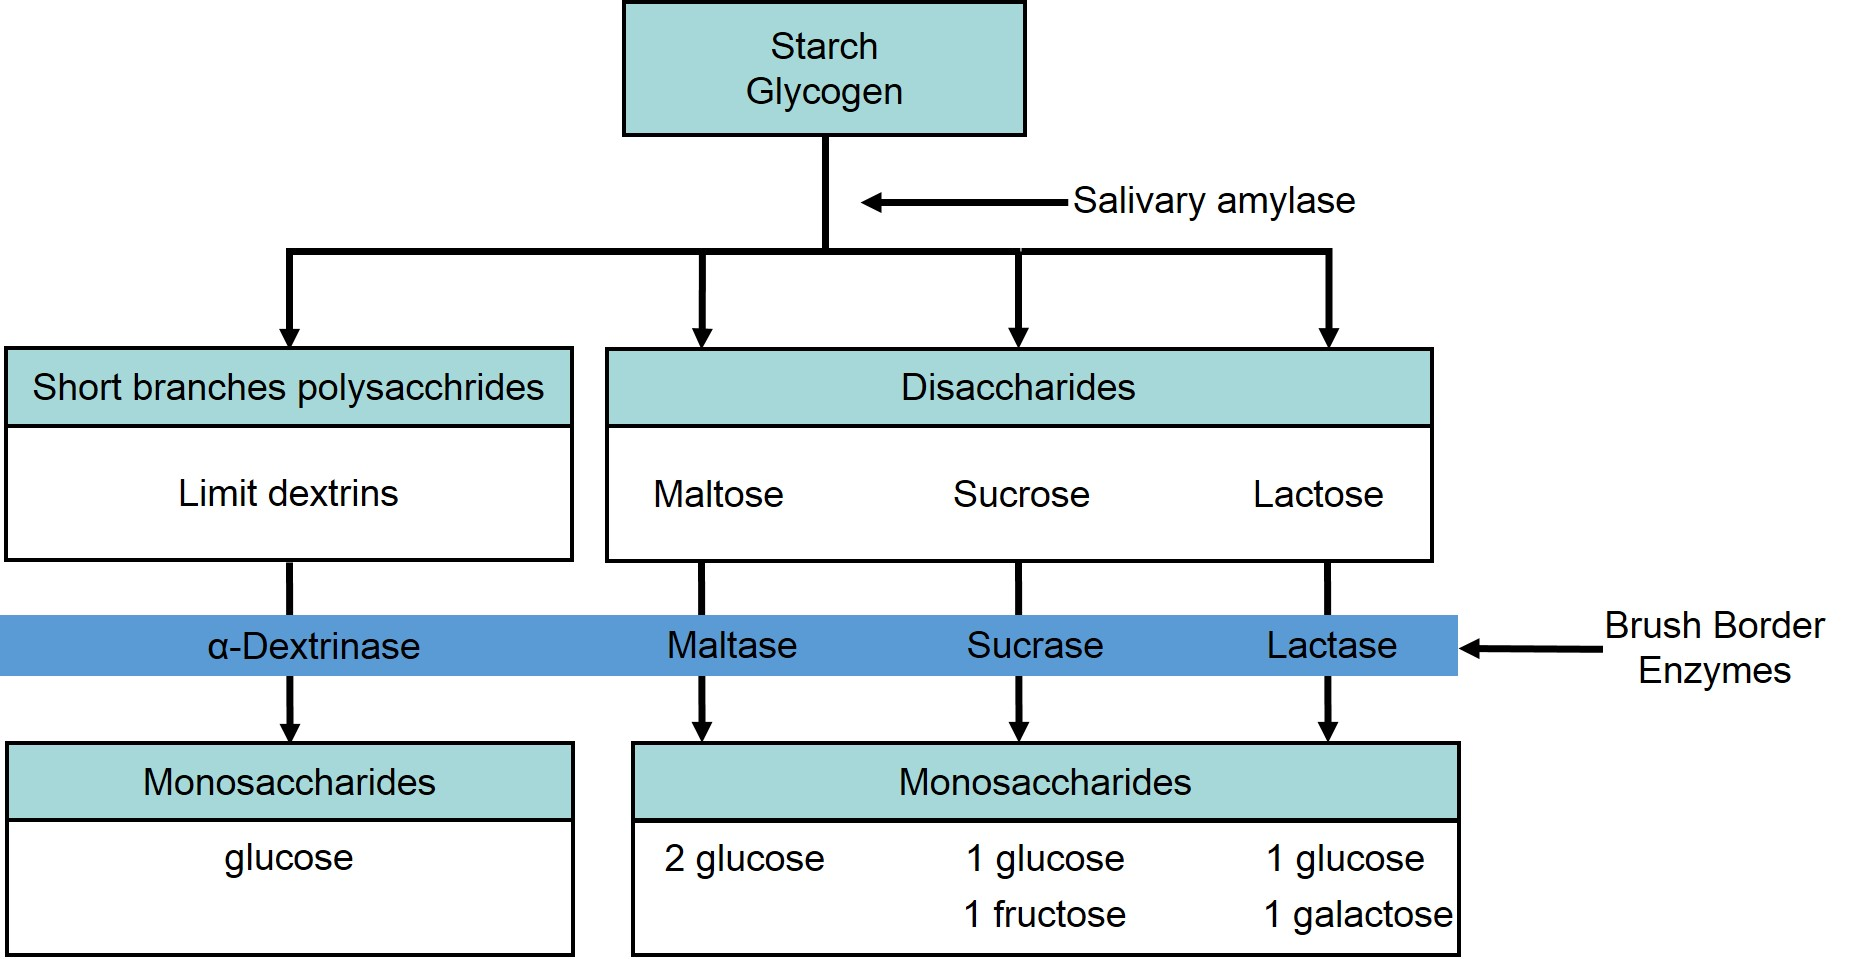 this flow chart shows the steps in digestion of carbohydrates  the  different levels shown are